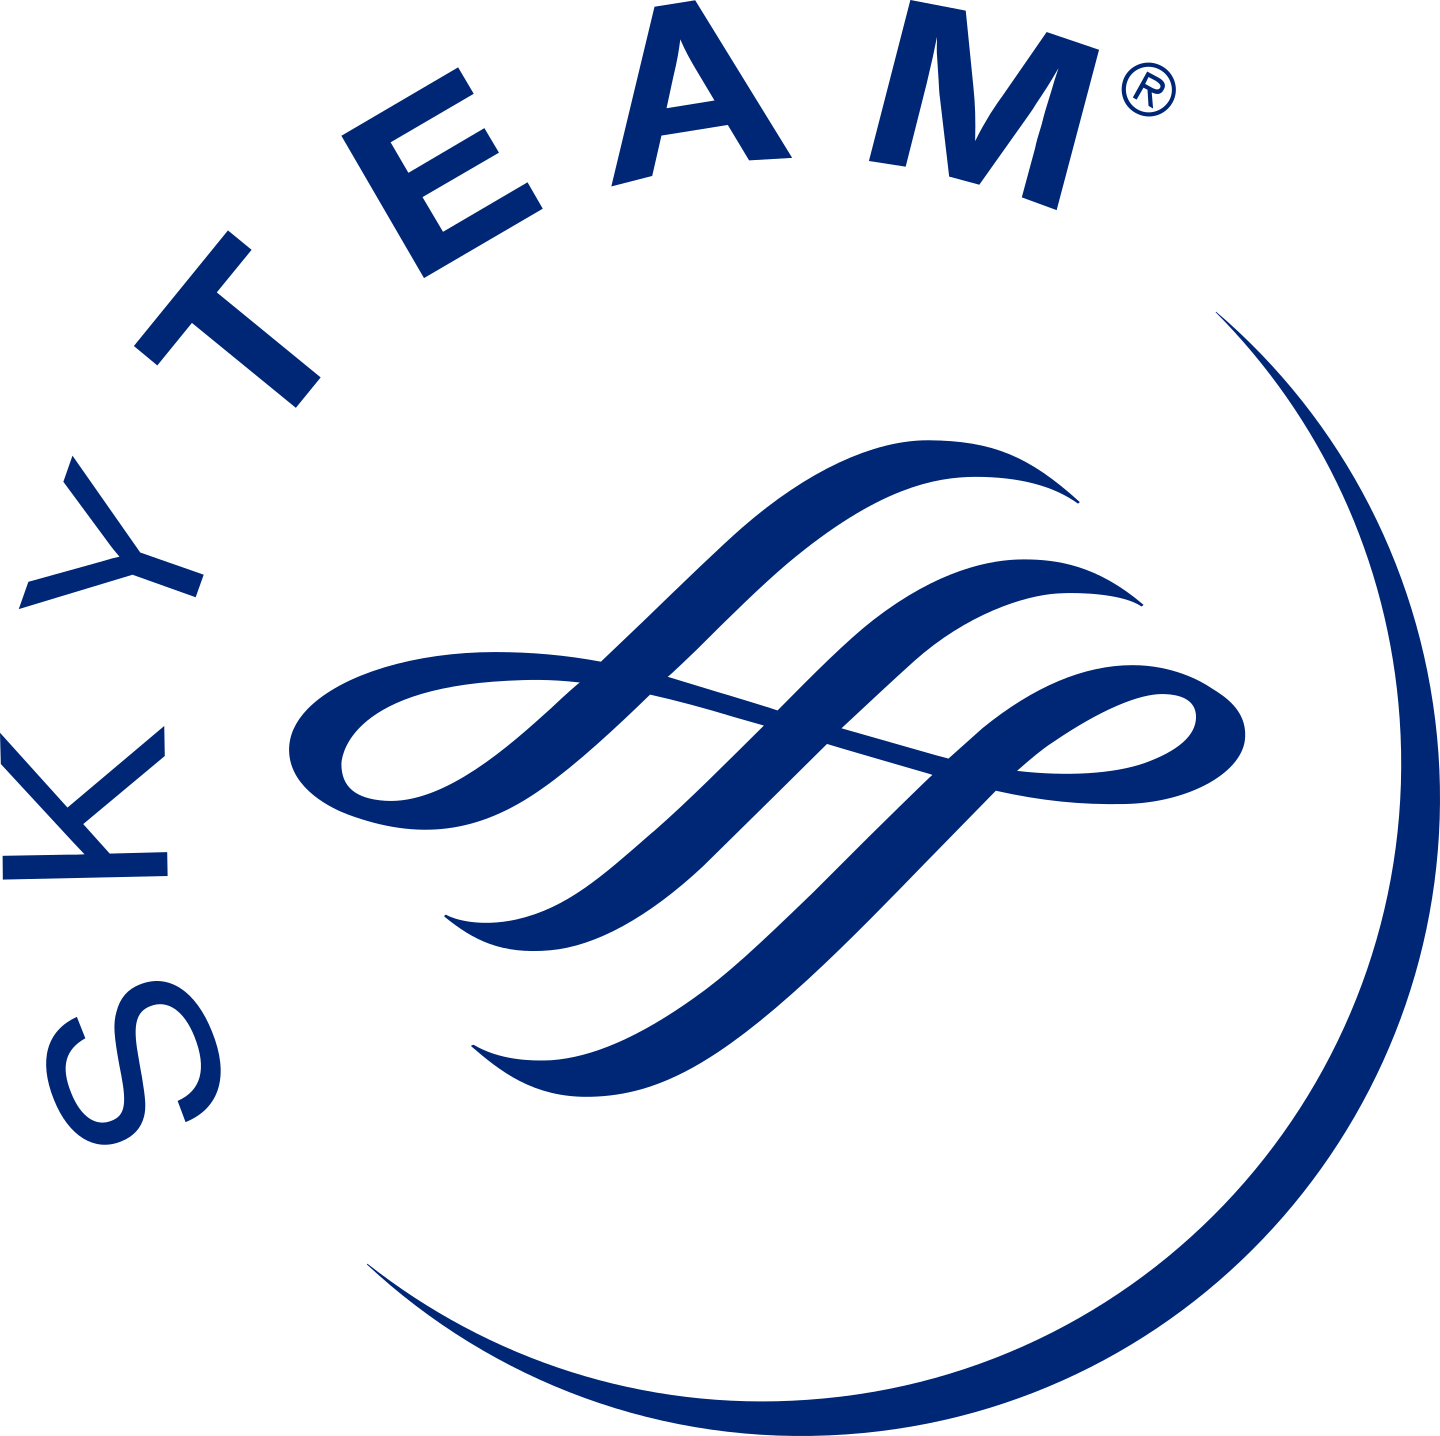 skyteam logo 3 - Skyteam Logo